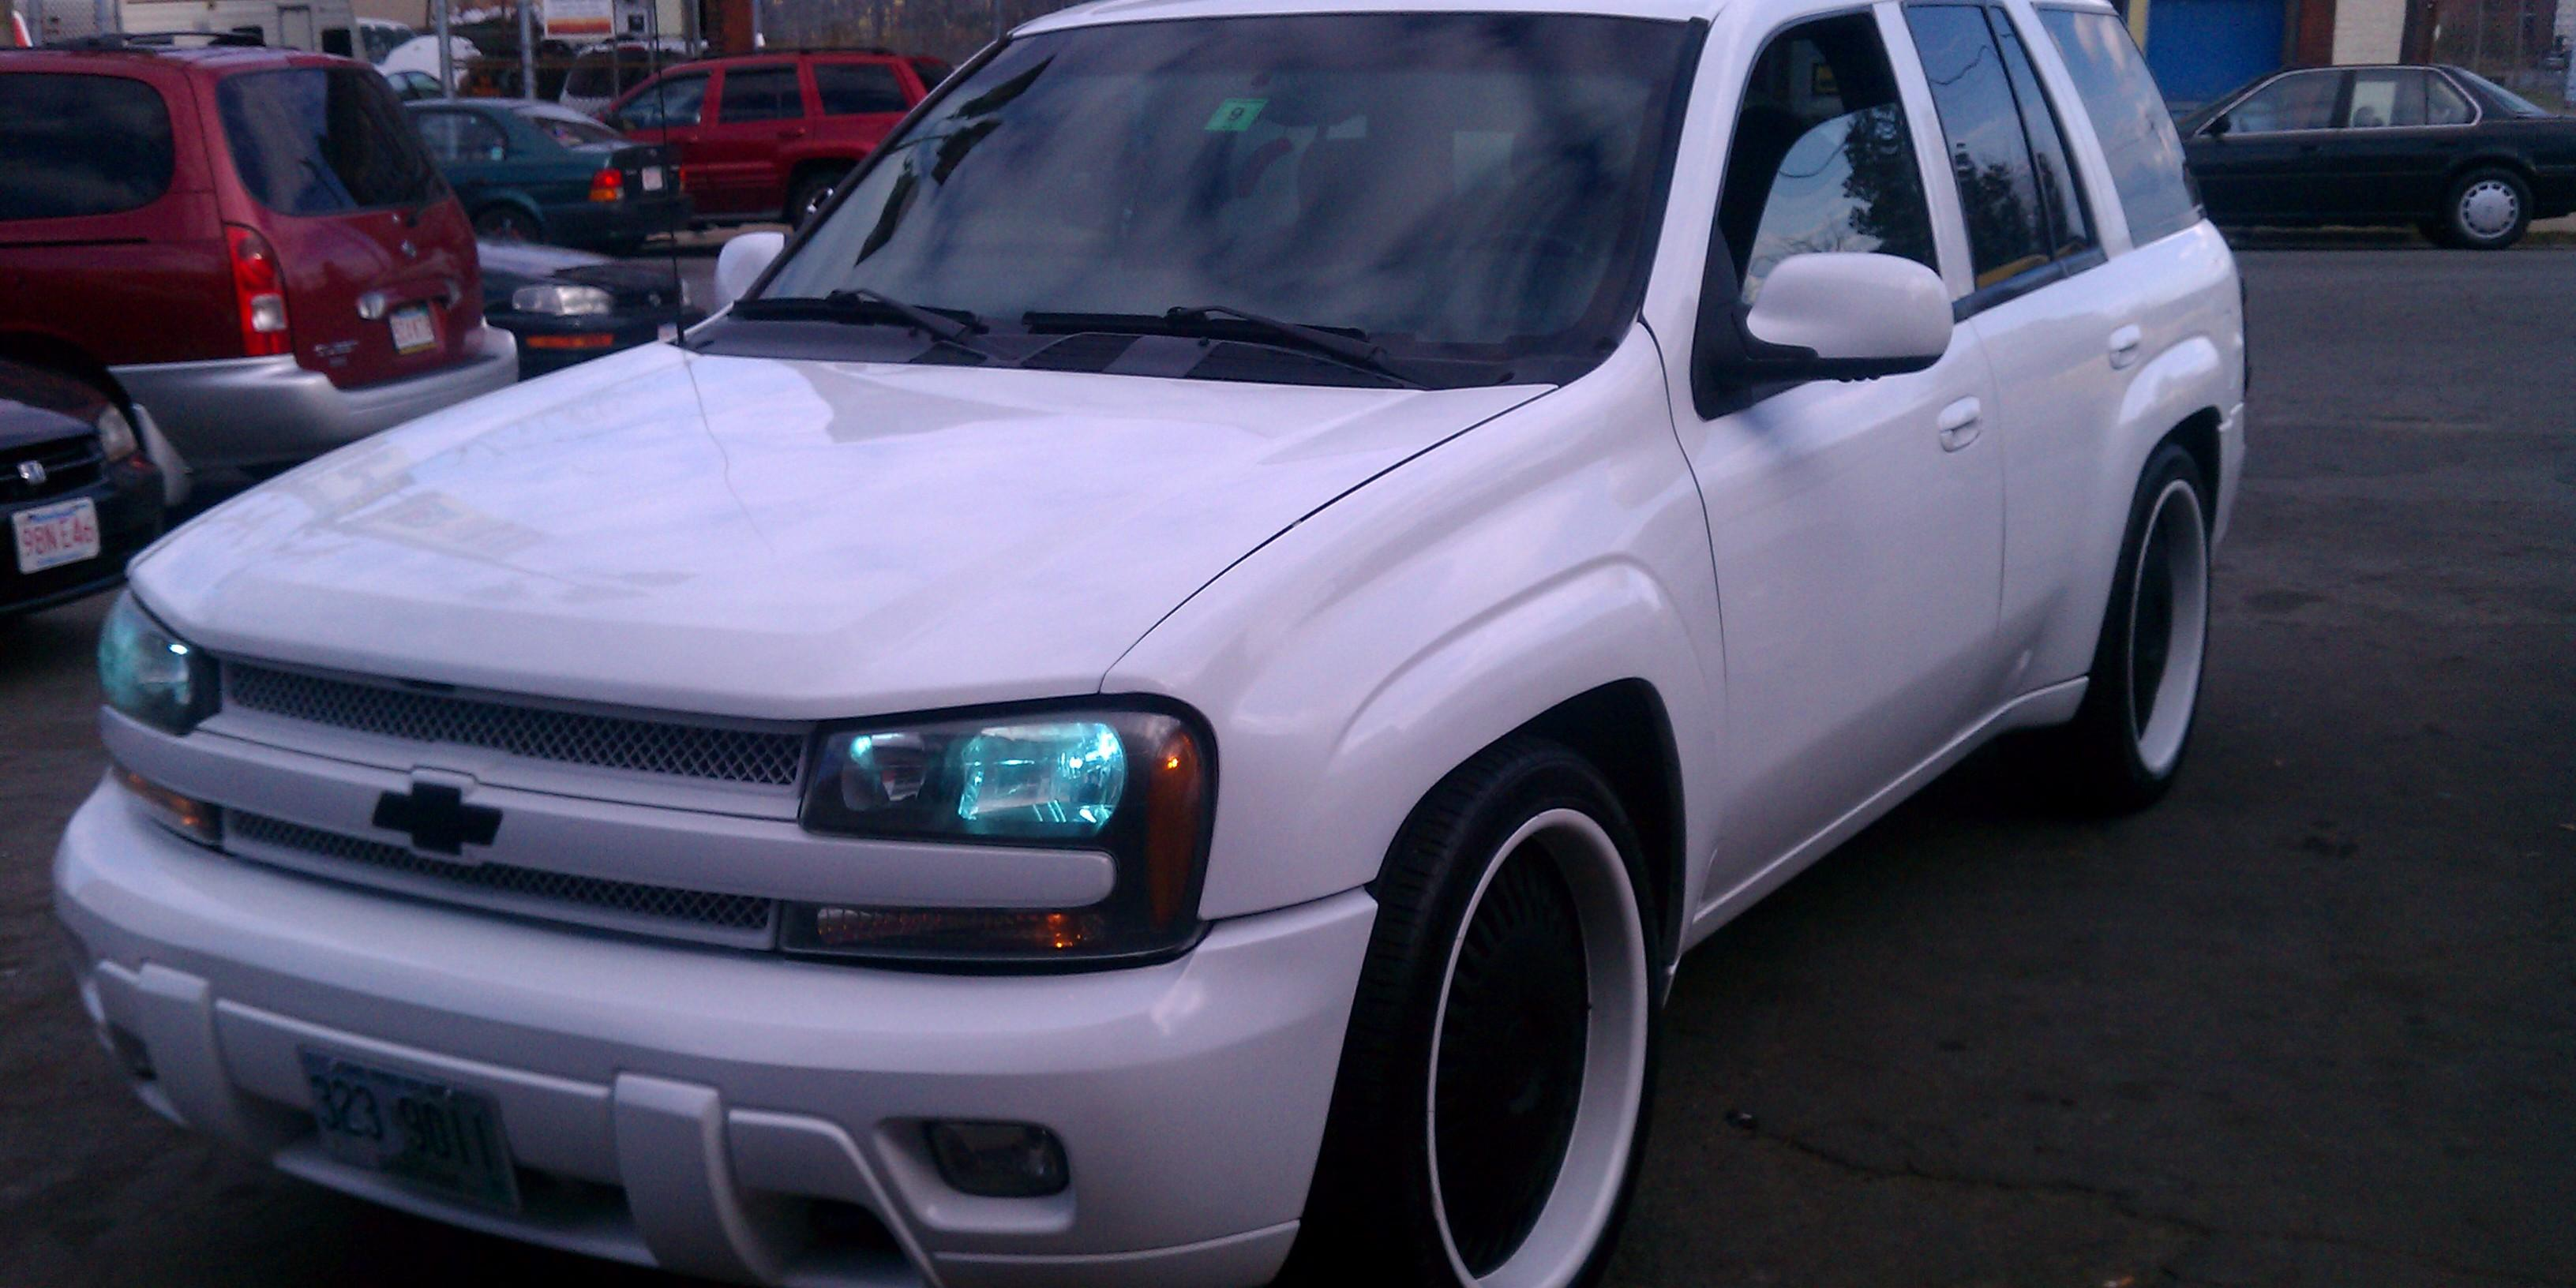 bigROB23's 2004 Chevrolet TrailBlazer